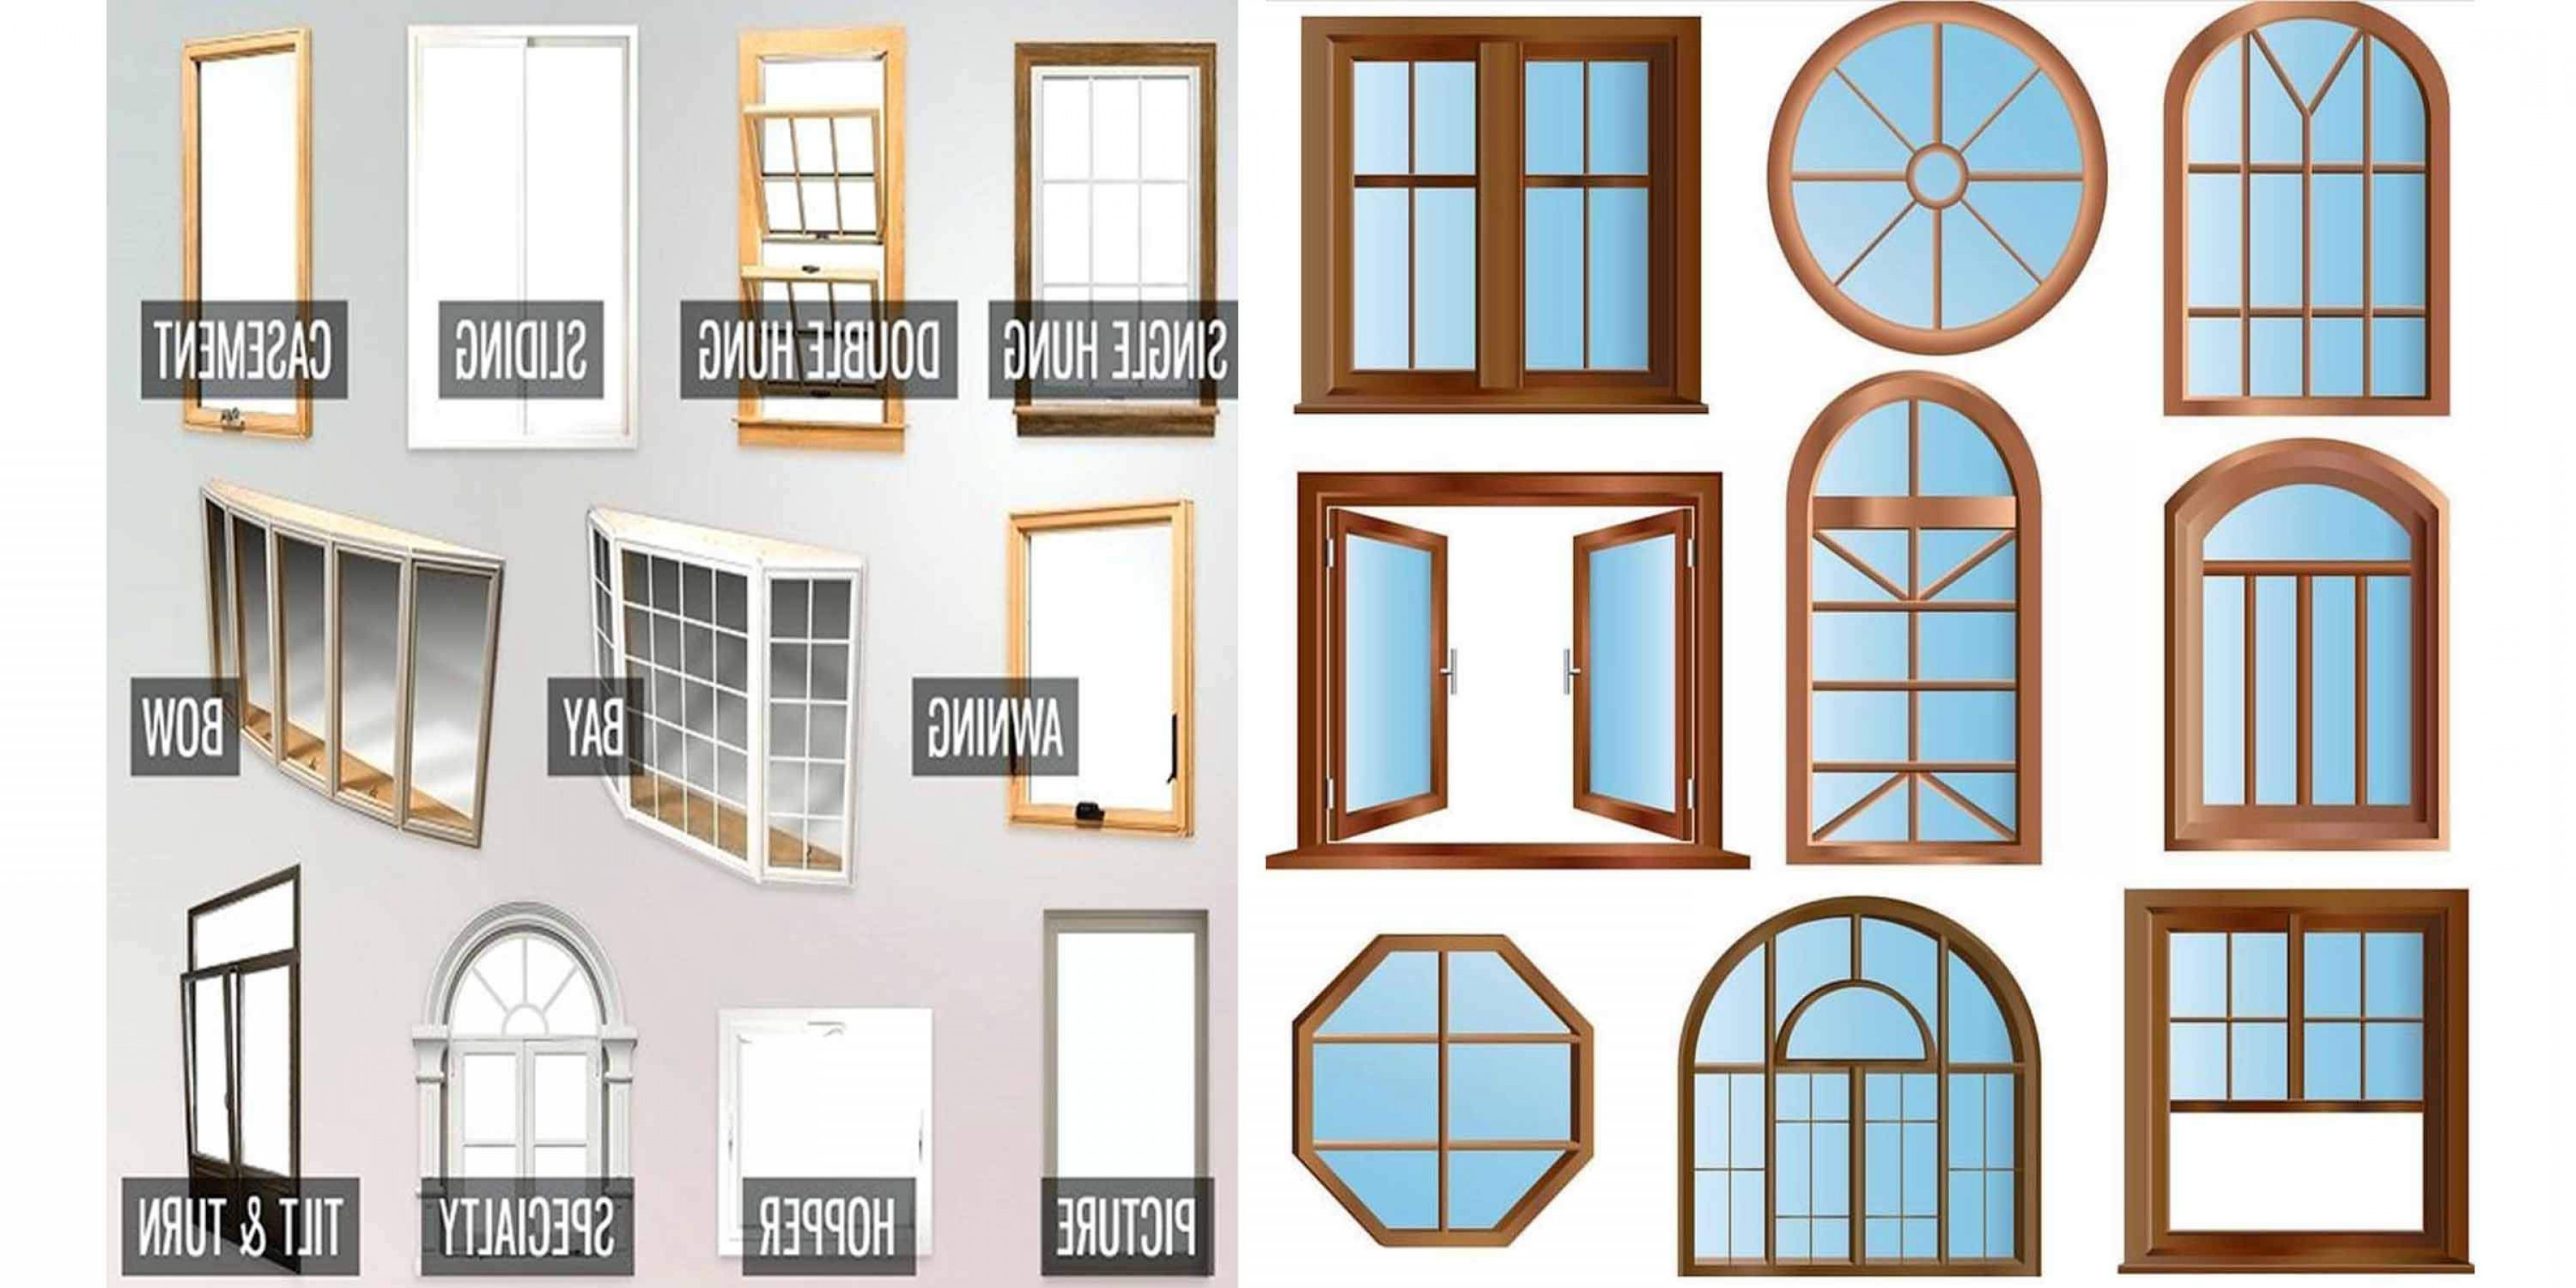 Amazing Window Vector: Top Amazing Windows Design Ideas You Want To See Them